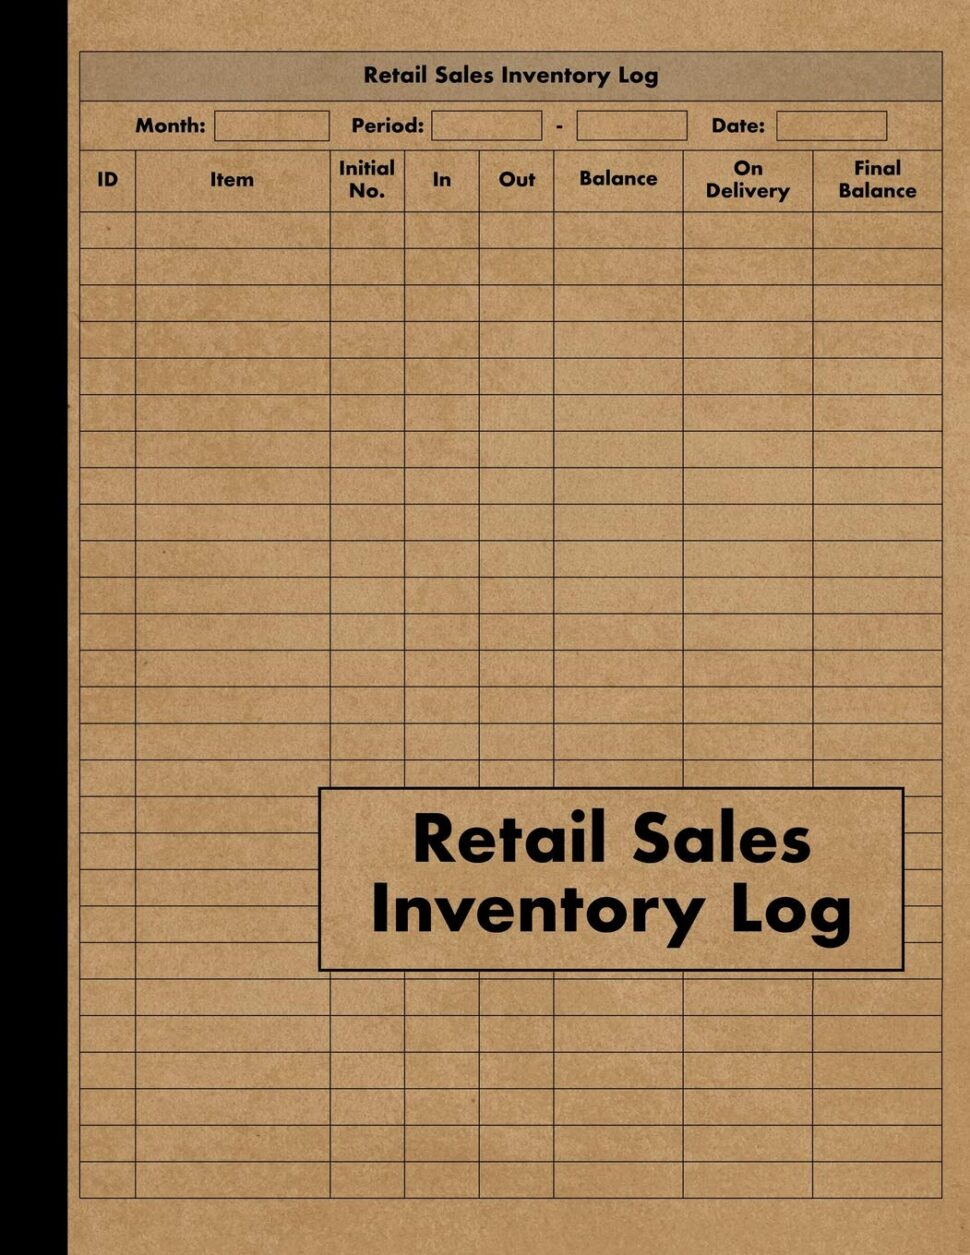 Large Size of Retail Inventory Large Book Management For Business Stock And Supplies Perfect Bound At Spreadsheet Template